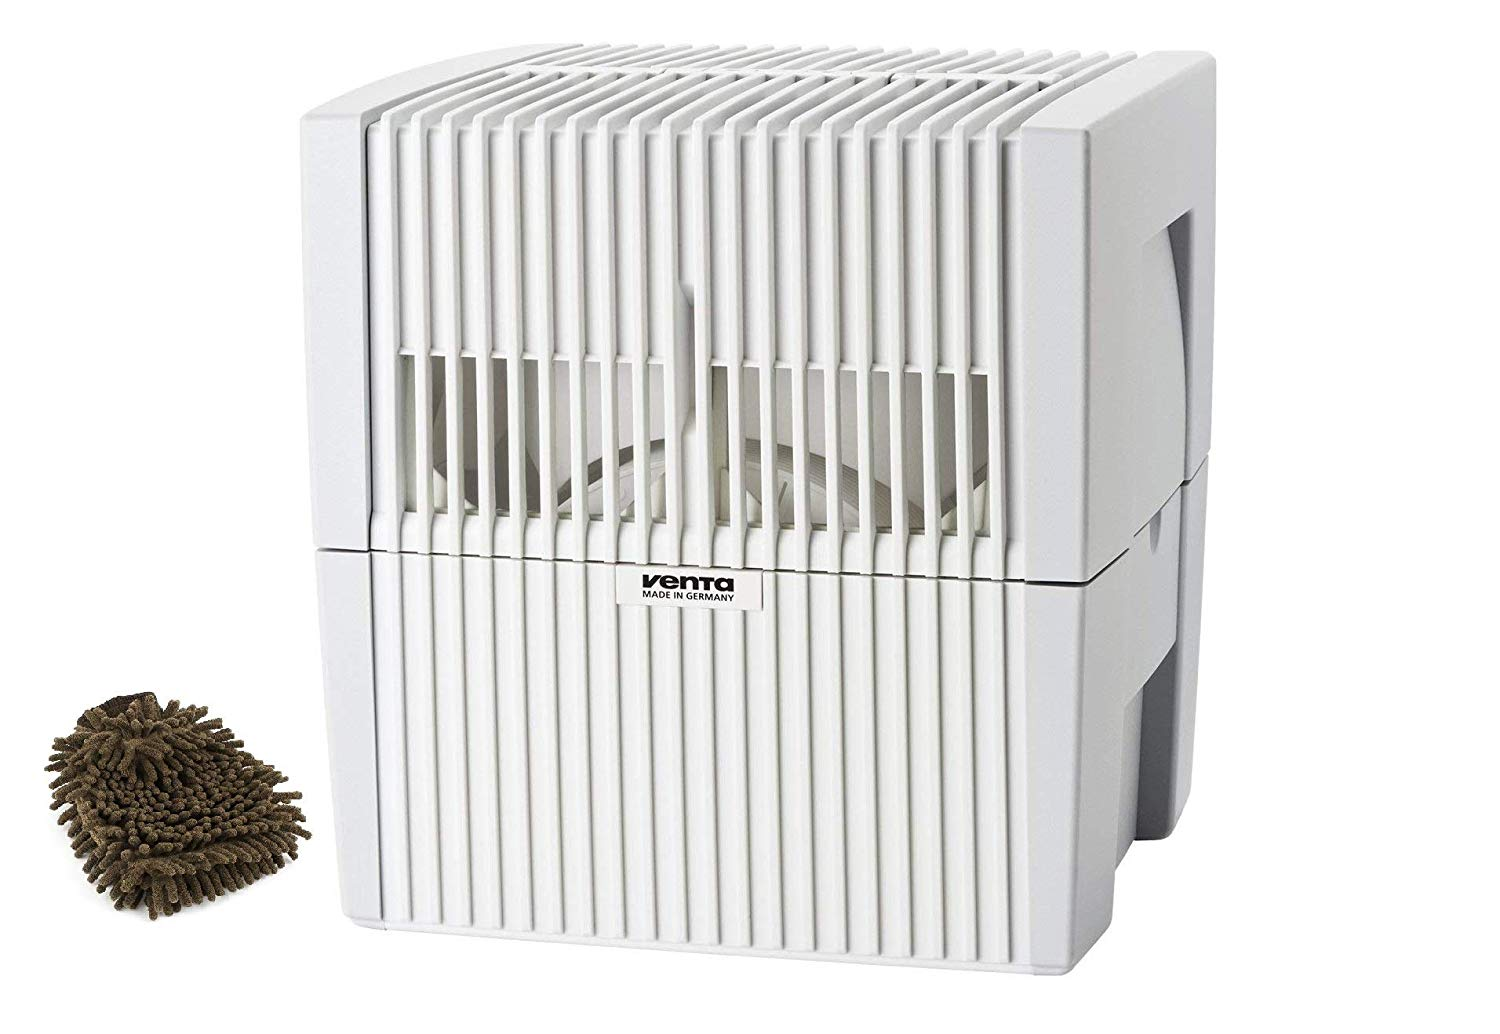 venta humidifier and air purifier - best humidifier for condo